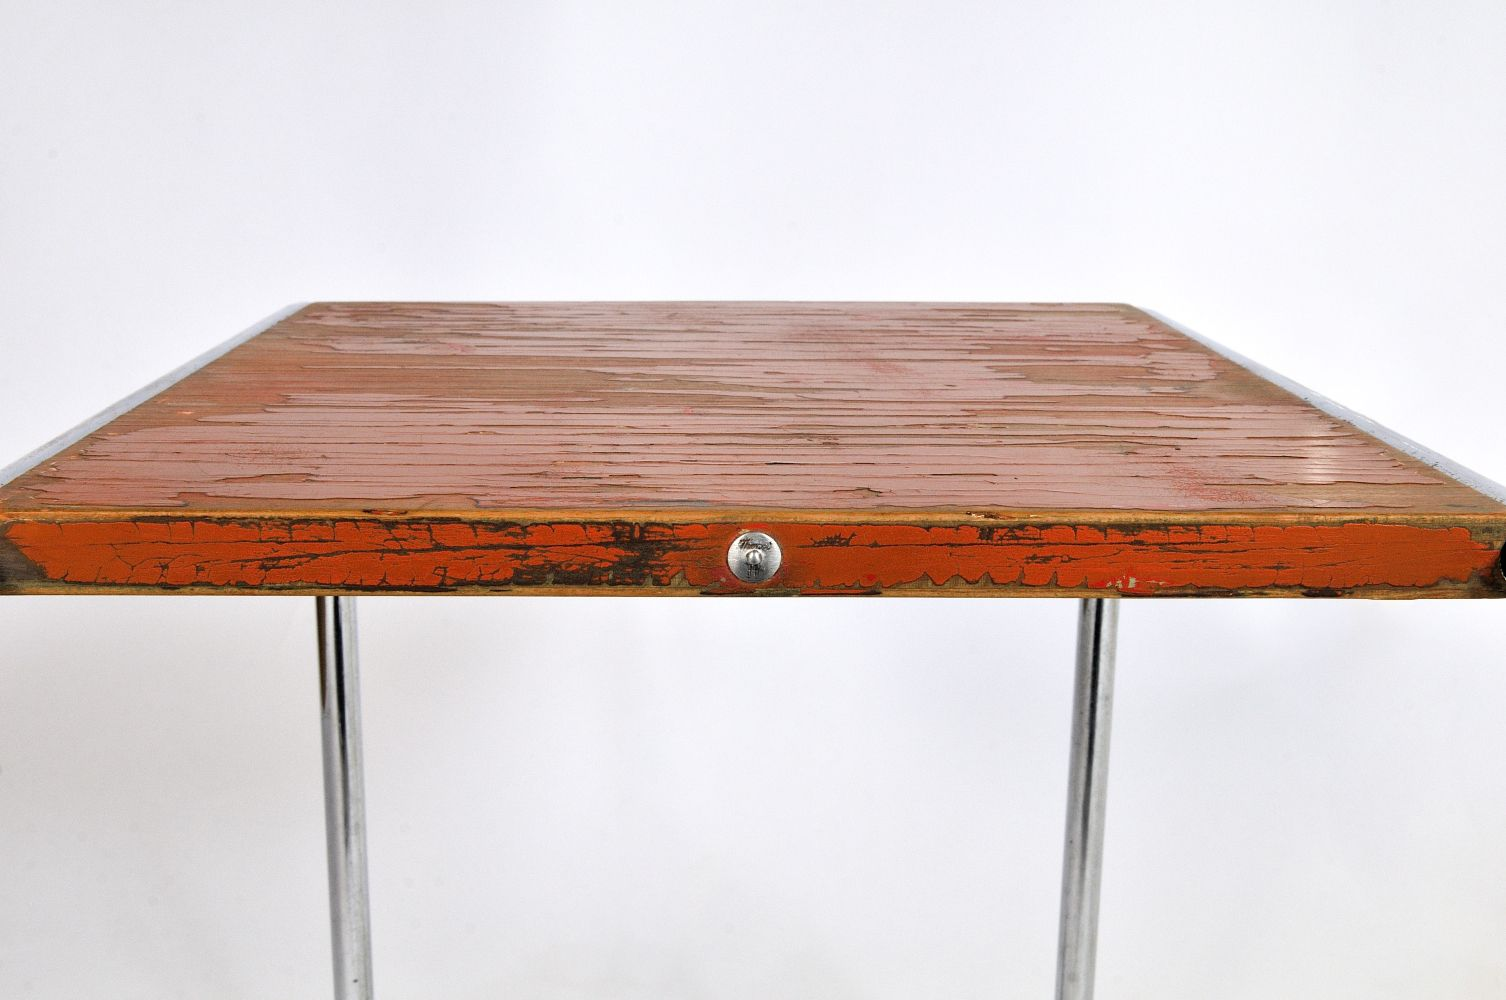 Vintage b9 orange tubular nesting table by marcel breuer for price per piece geotapseo Choice Image